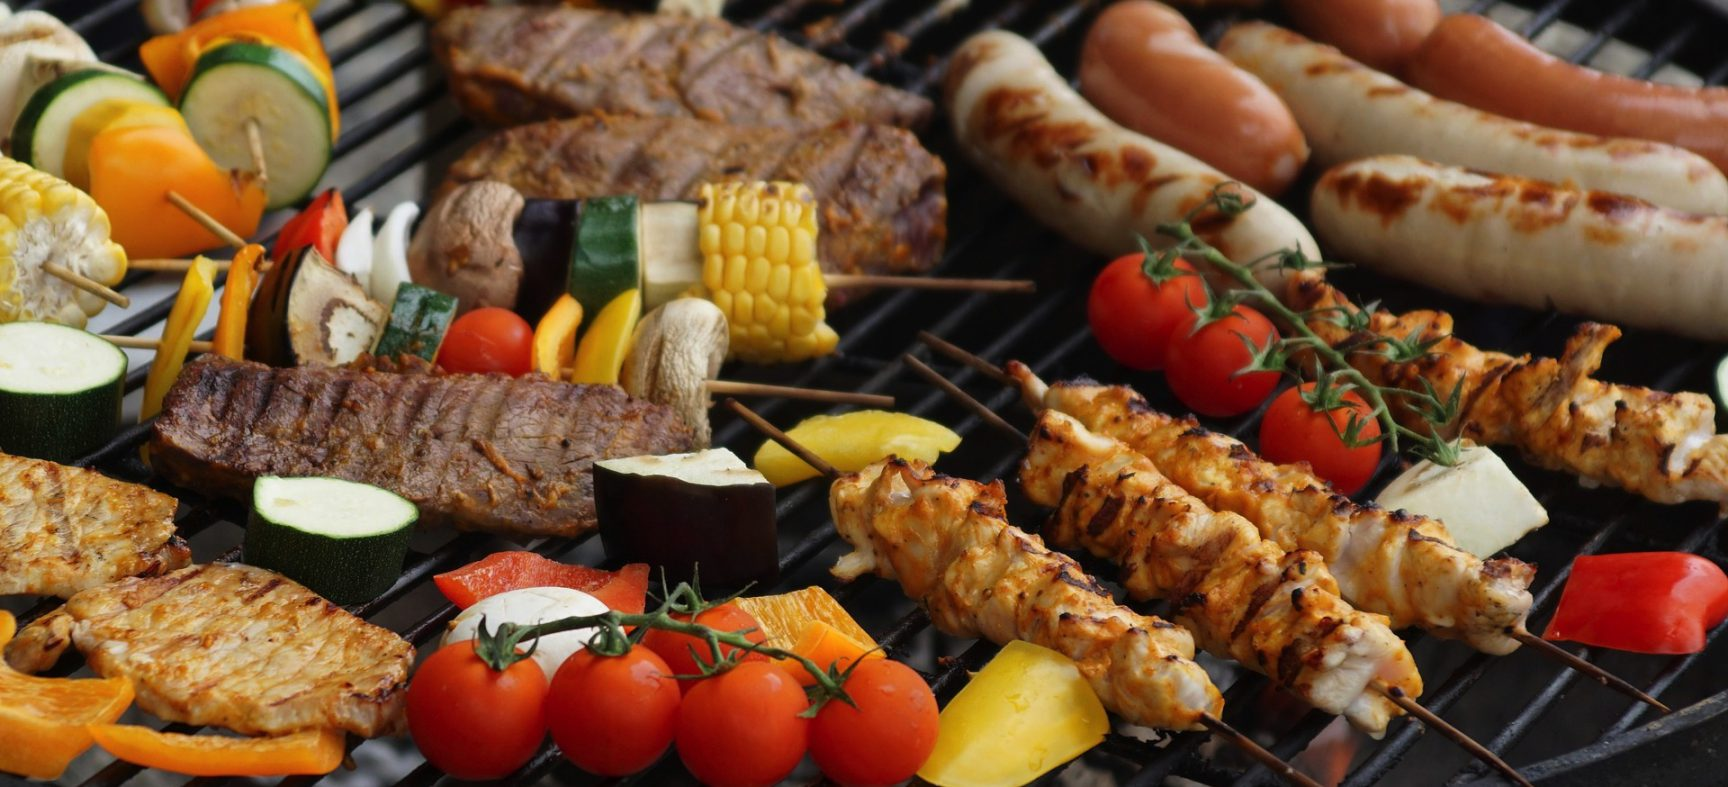 Getting your grill ready for a backyard barbecue